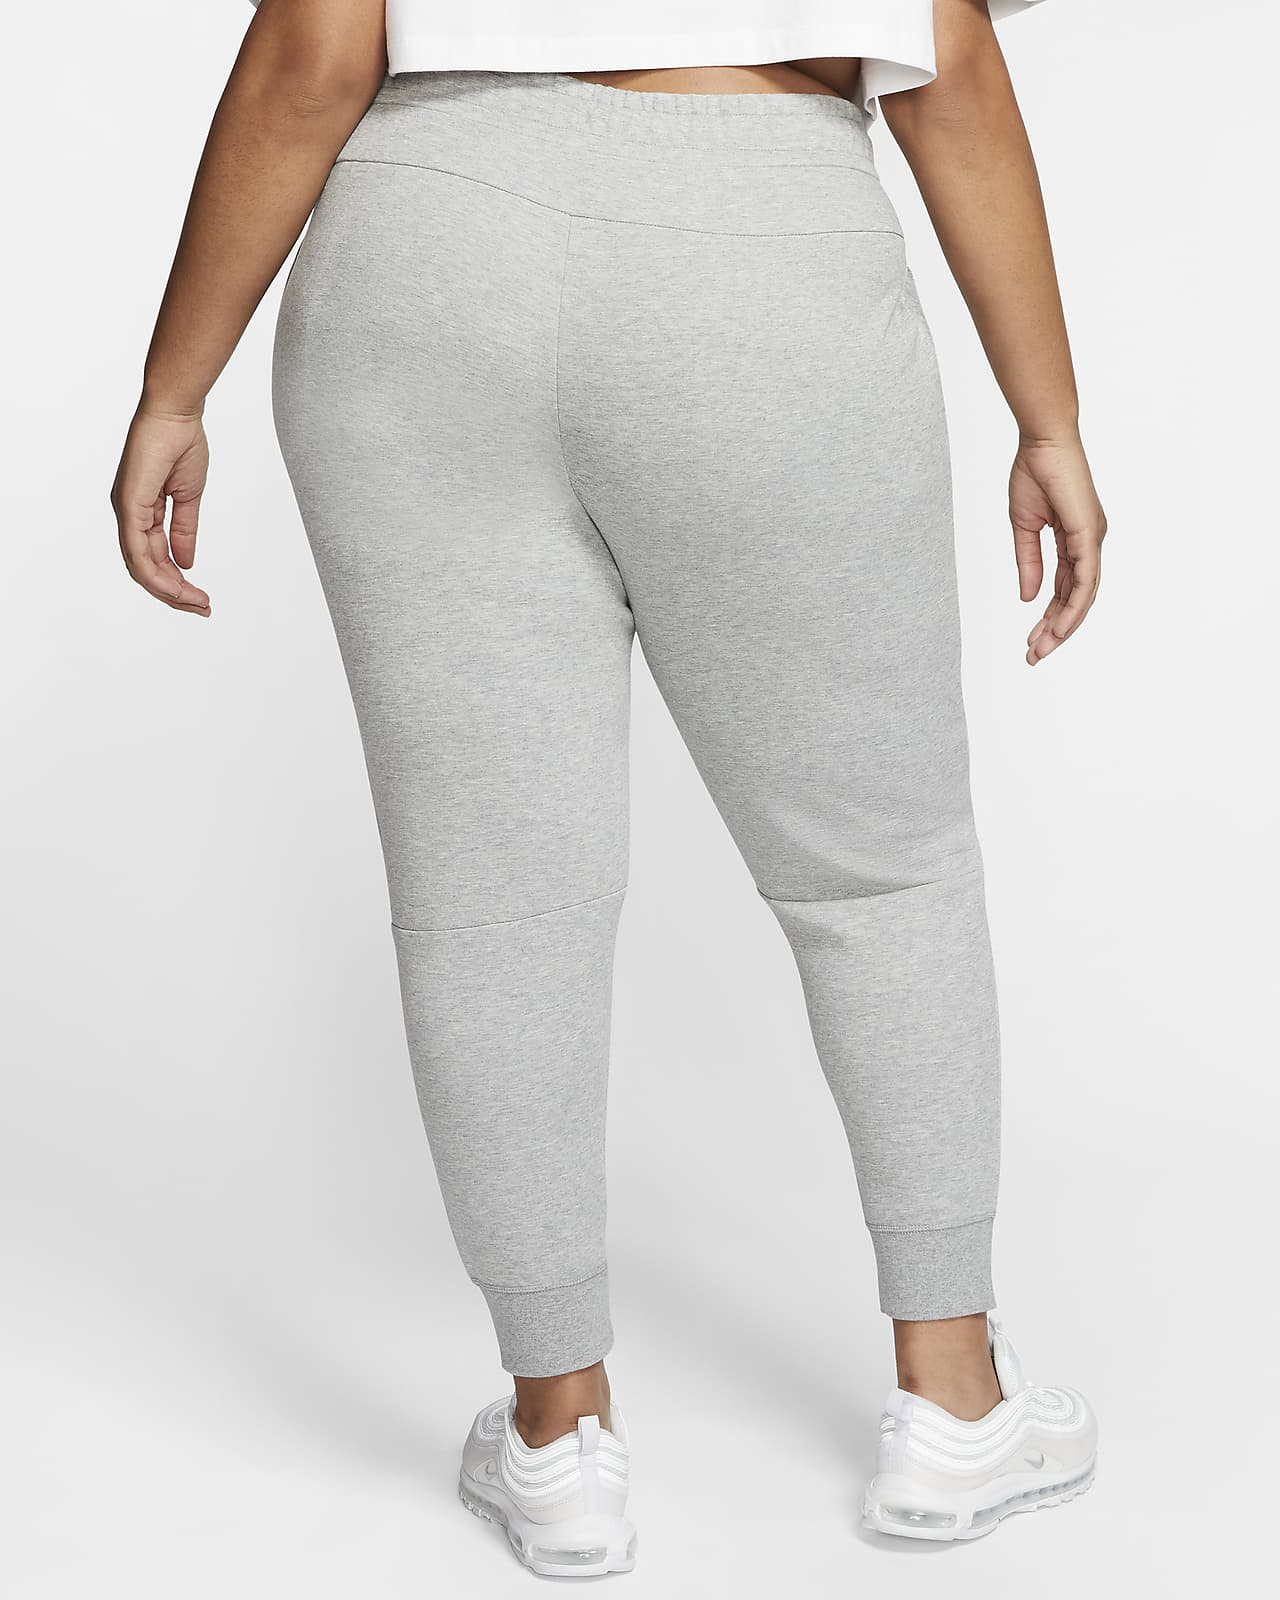 Women S Plus Size Nike Jogging Suits Cheap Online